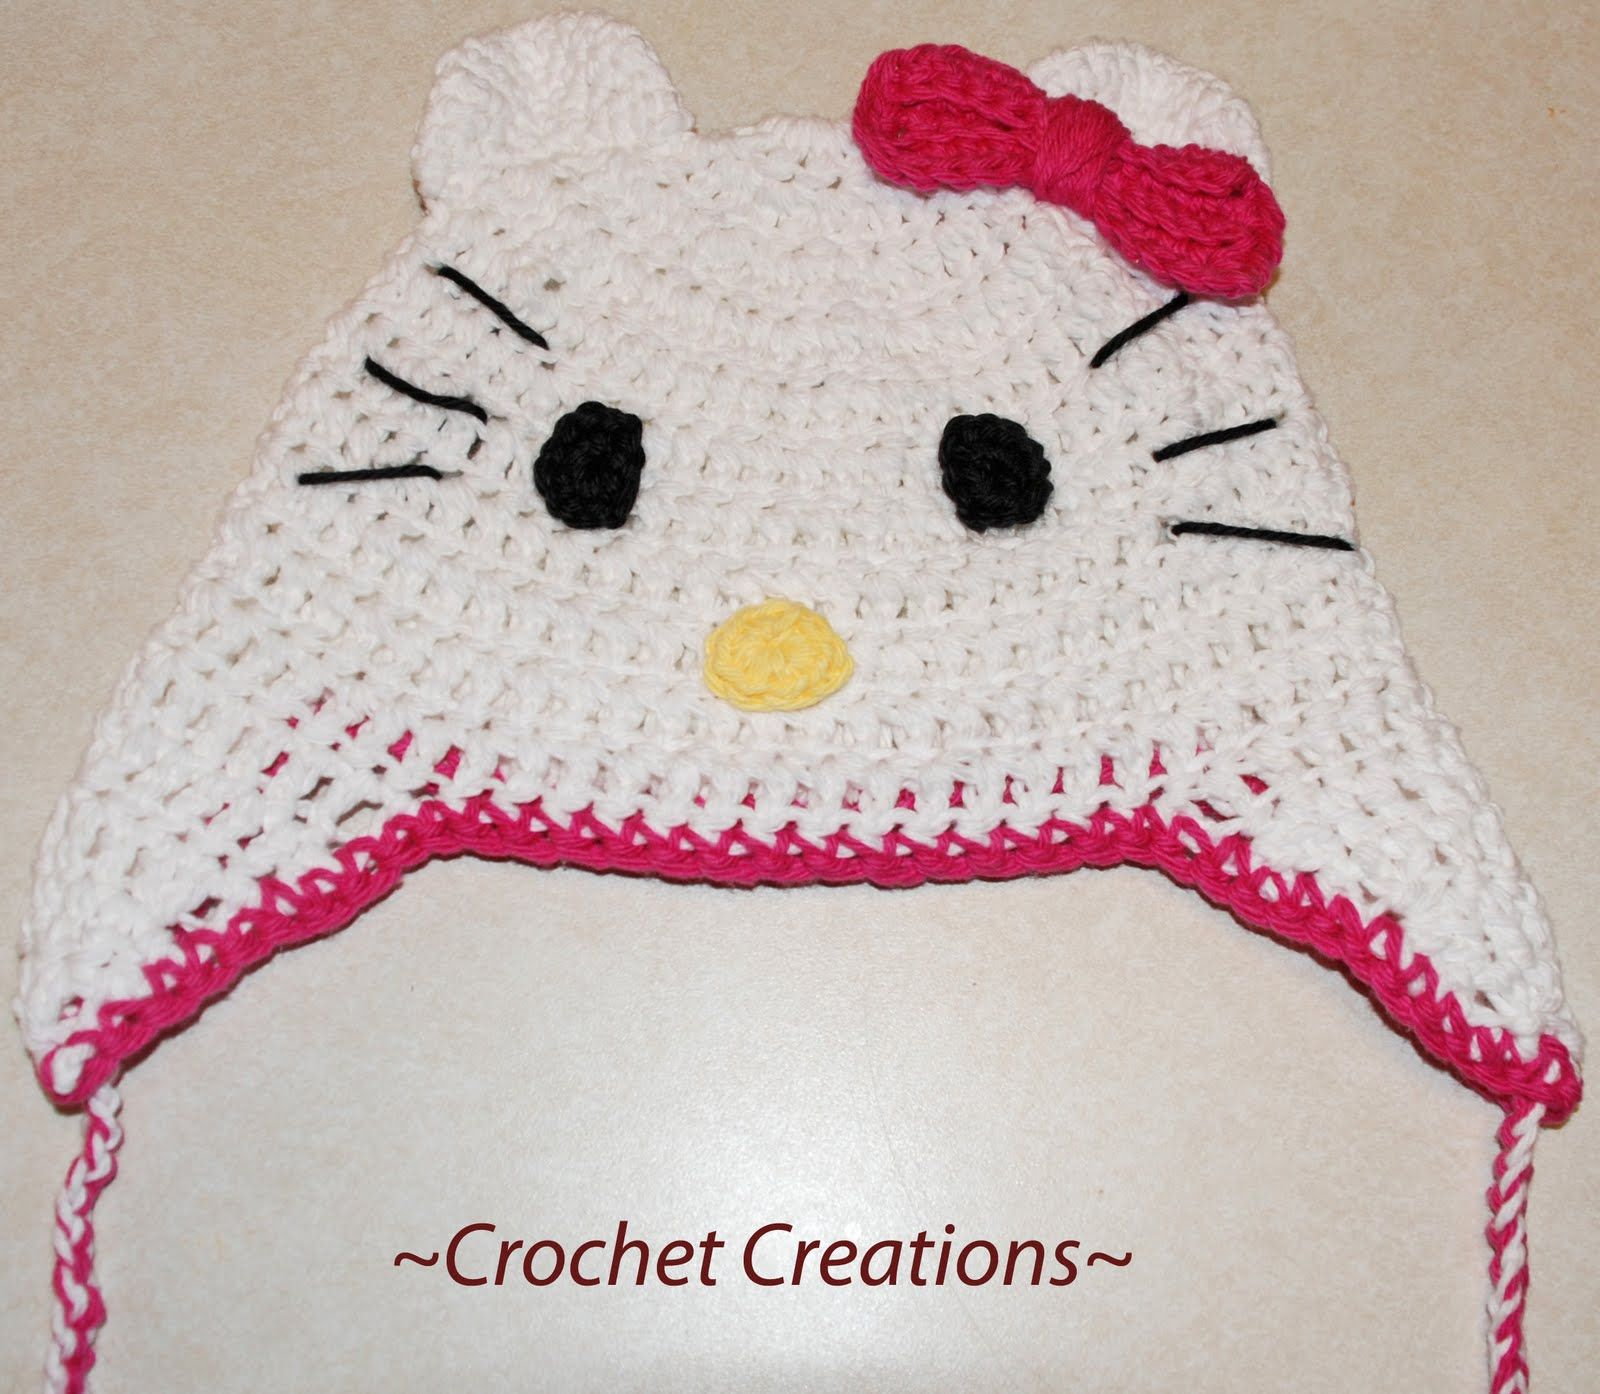 Amys crochet creative creations hello kitty ear flap hat hats amys crochet creative creations free crochet hello kitty ear flap child hat sizes baby to teen bankloansurffo Image collections